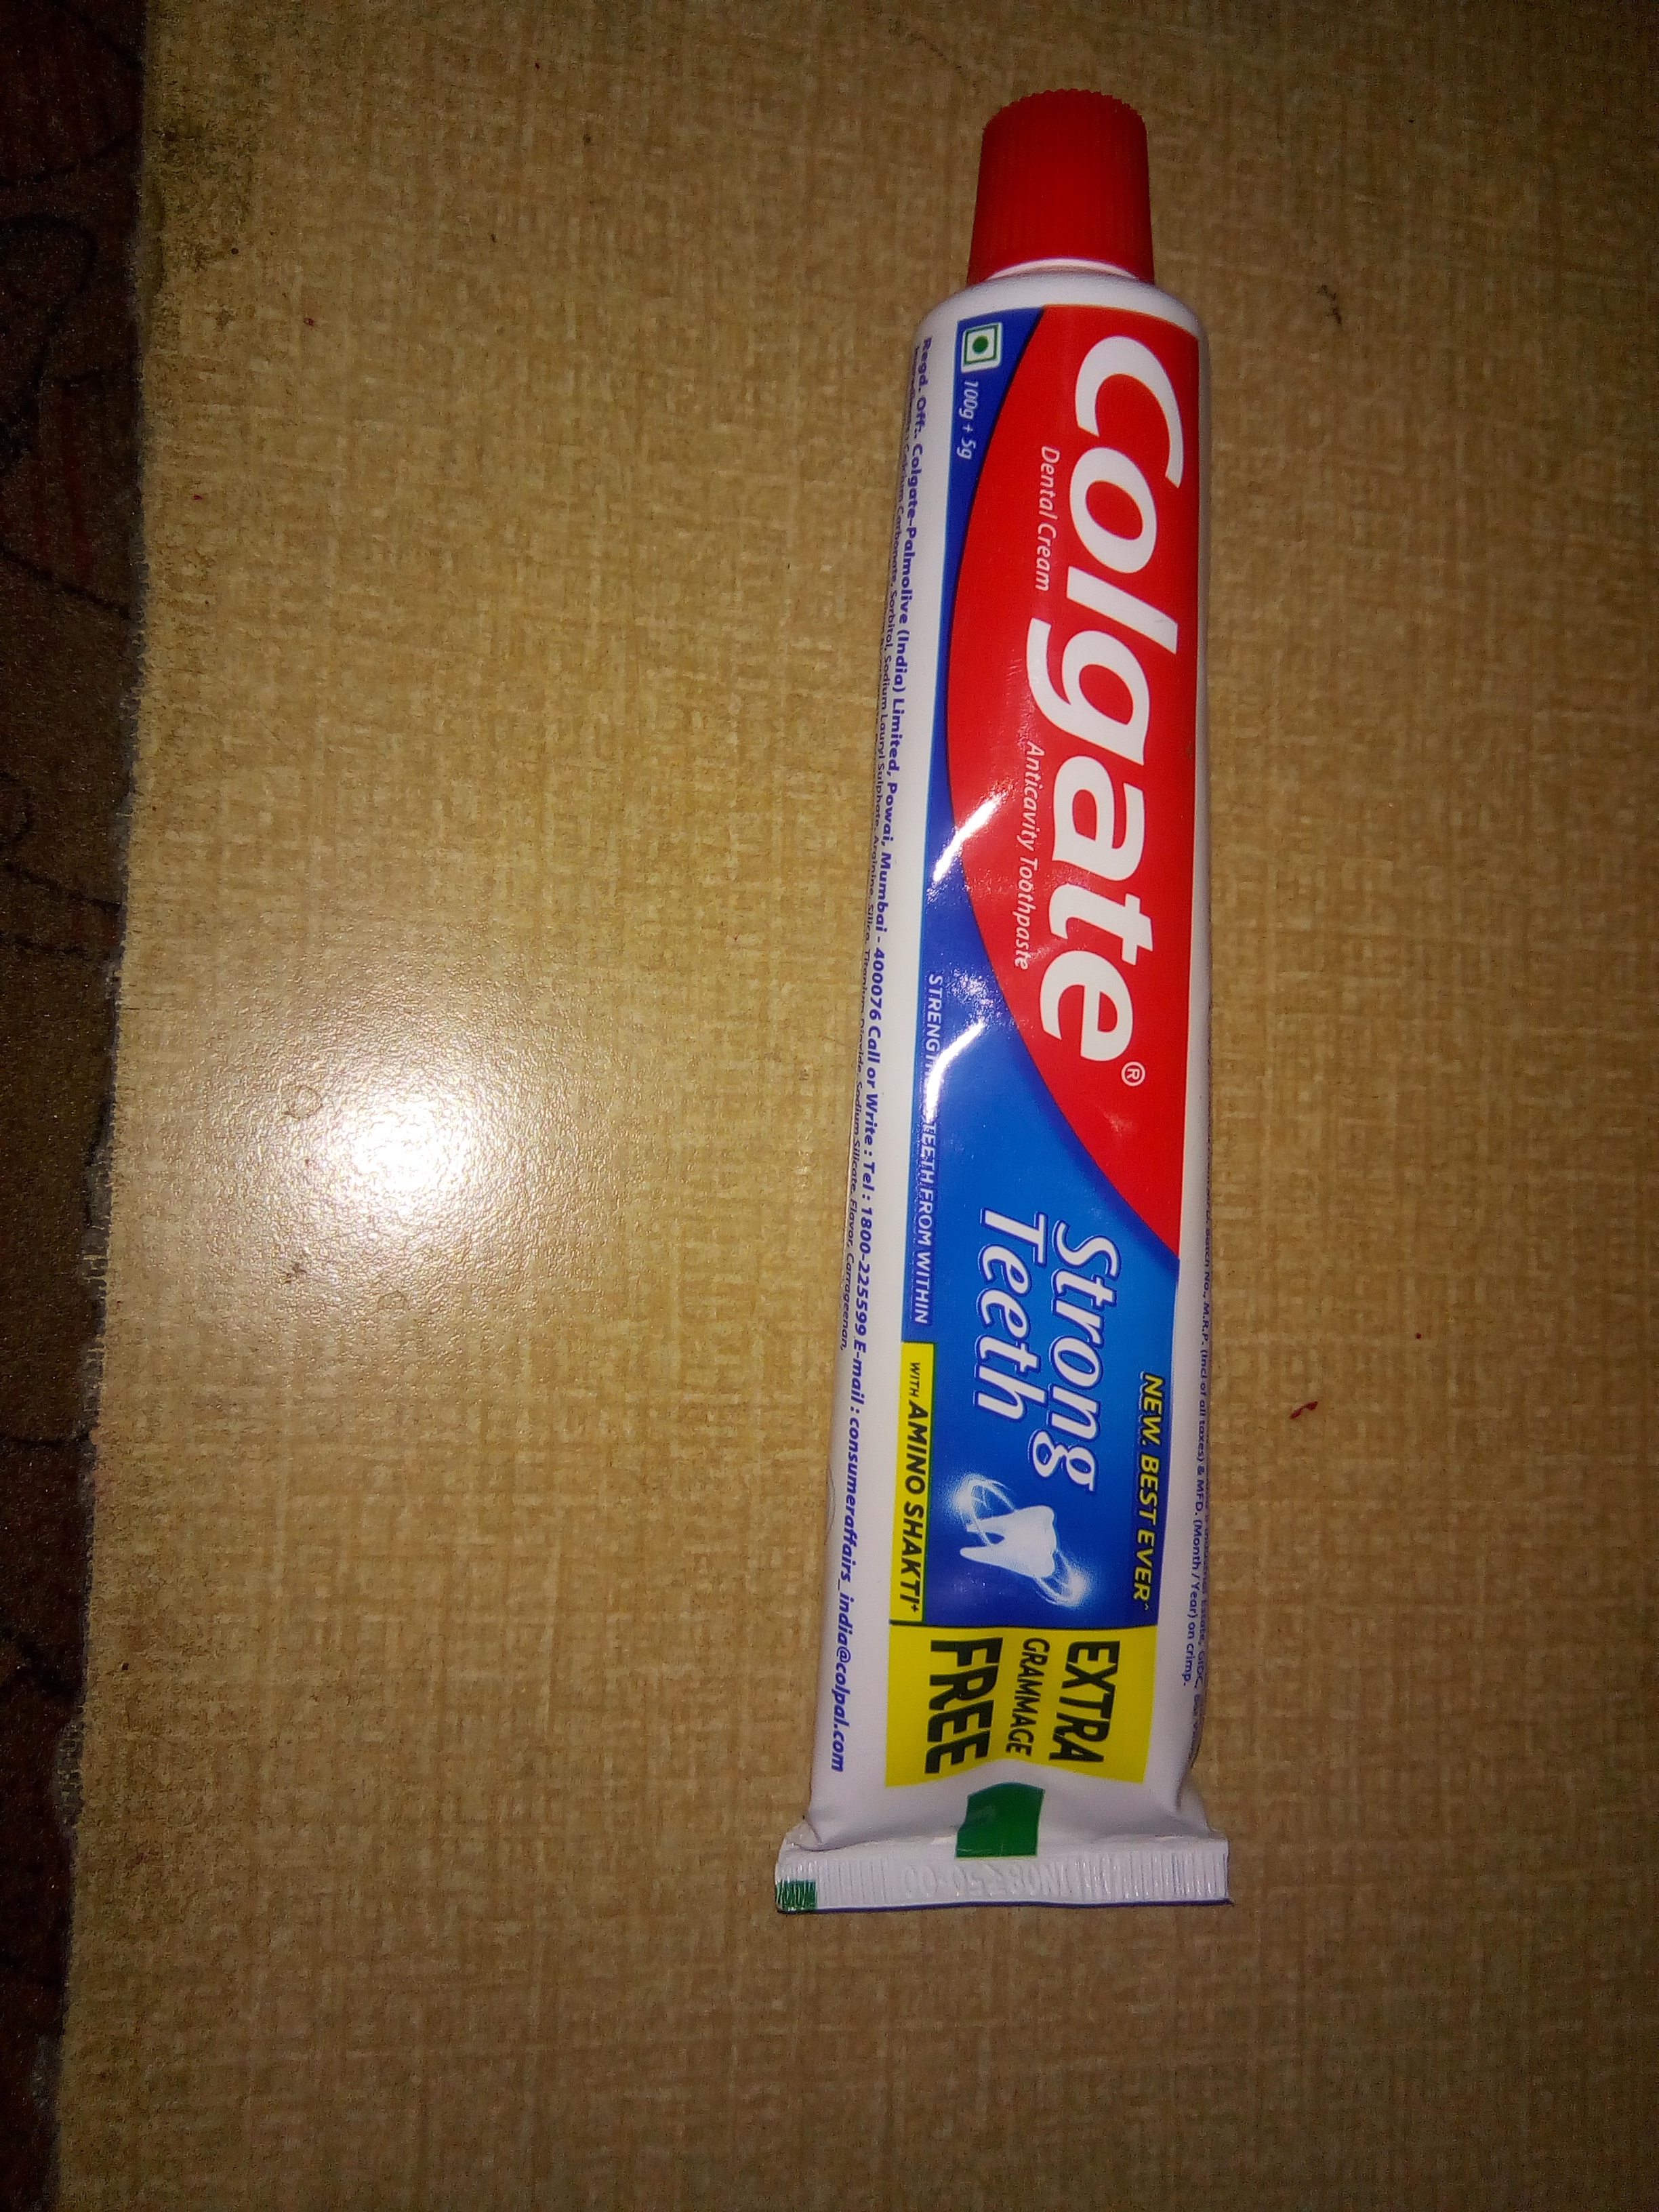 Colgate Strong Teeth Toothpaste-Colgate Dental Cream Anticavity Toothpaste For Strong Teeth-By aflyingsoul